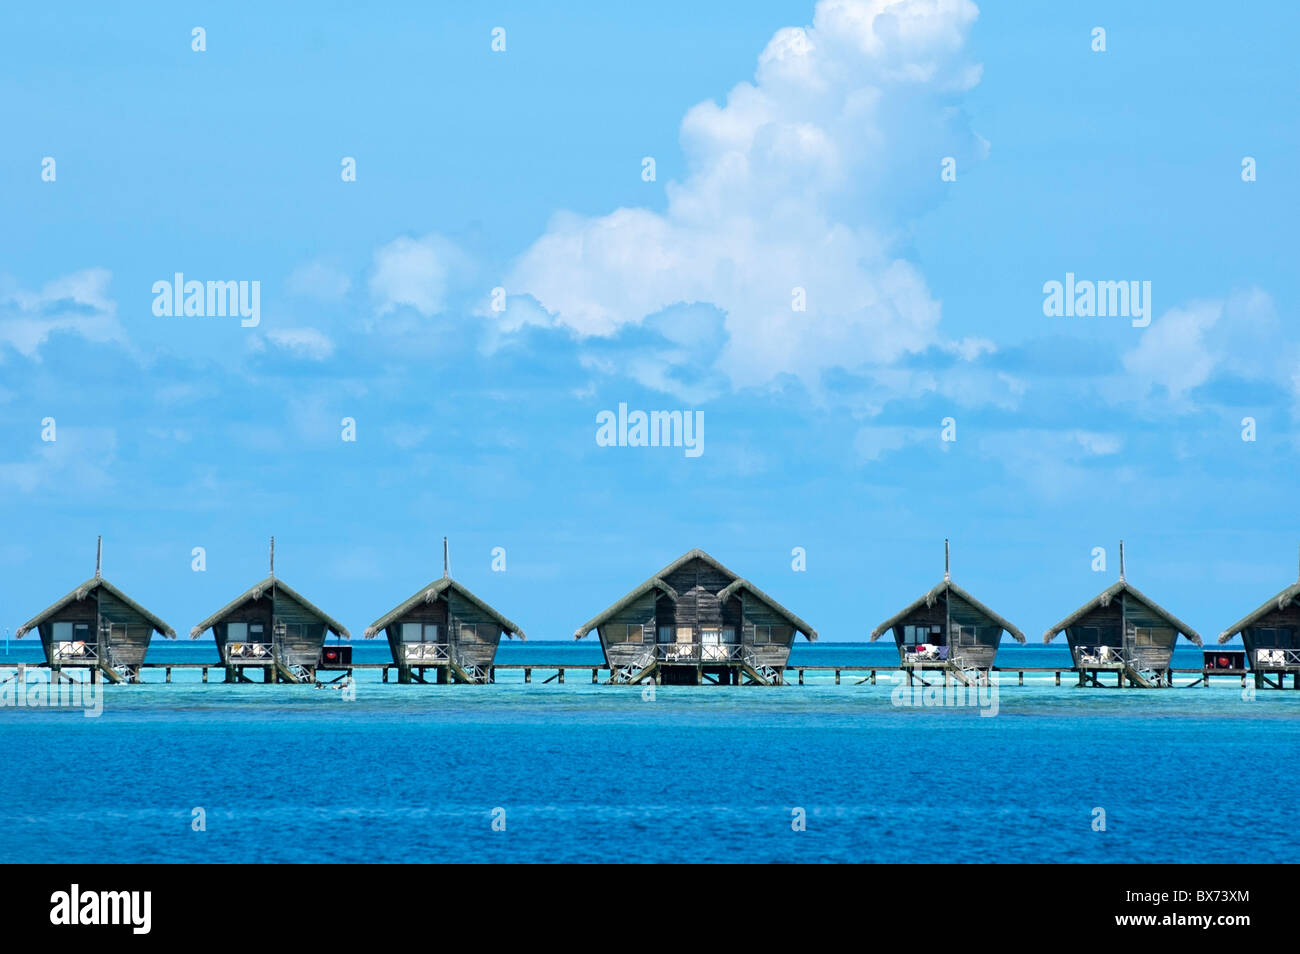 Resort bungalows in the sea, Maldives. - Stock Image